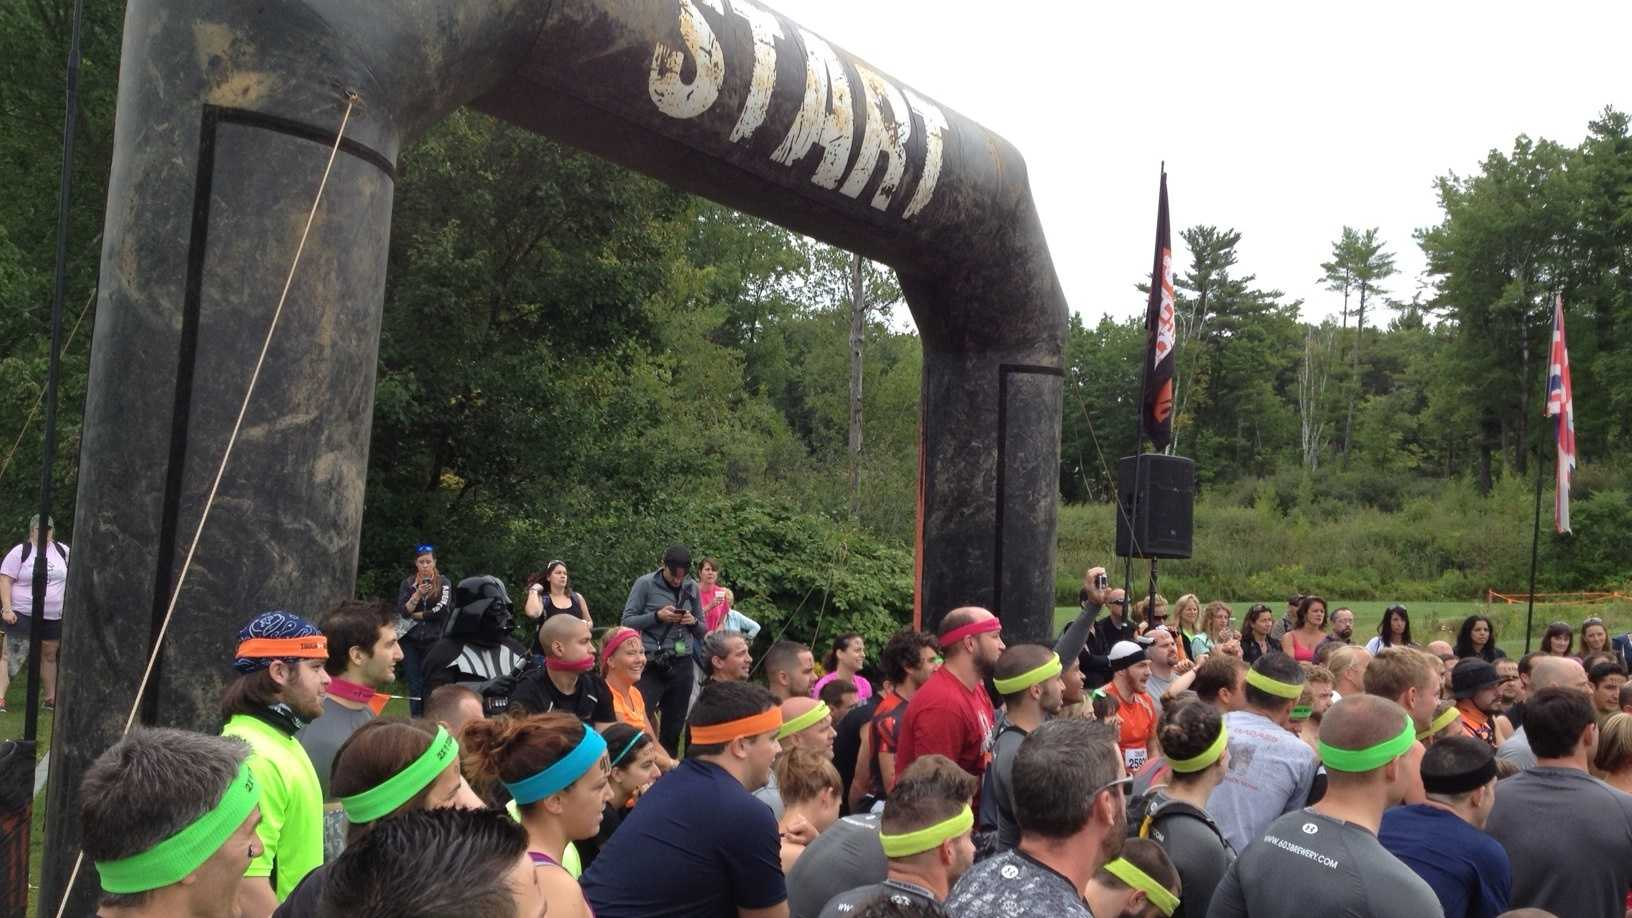 Participants begin the Tough Mudder challenge